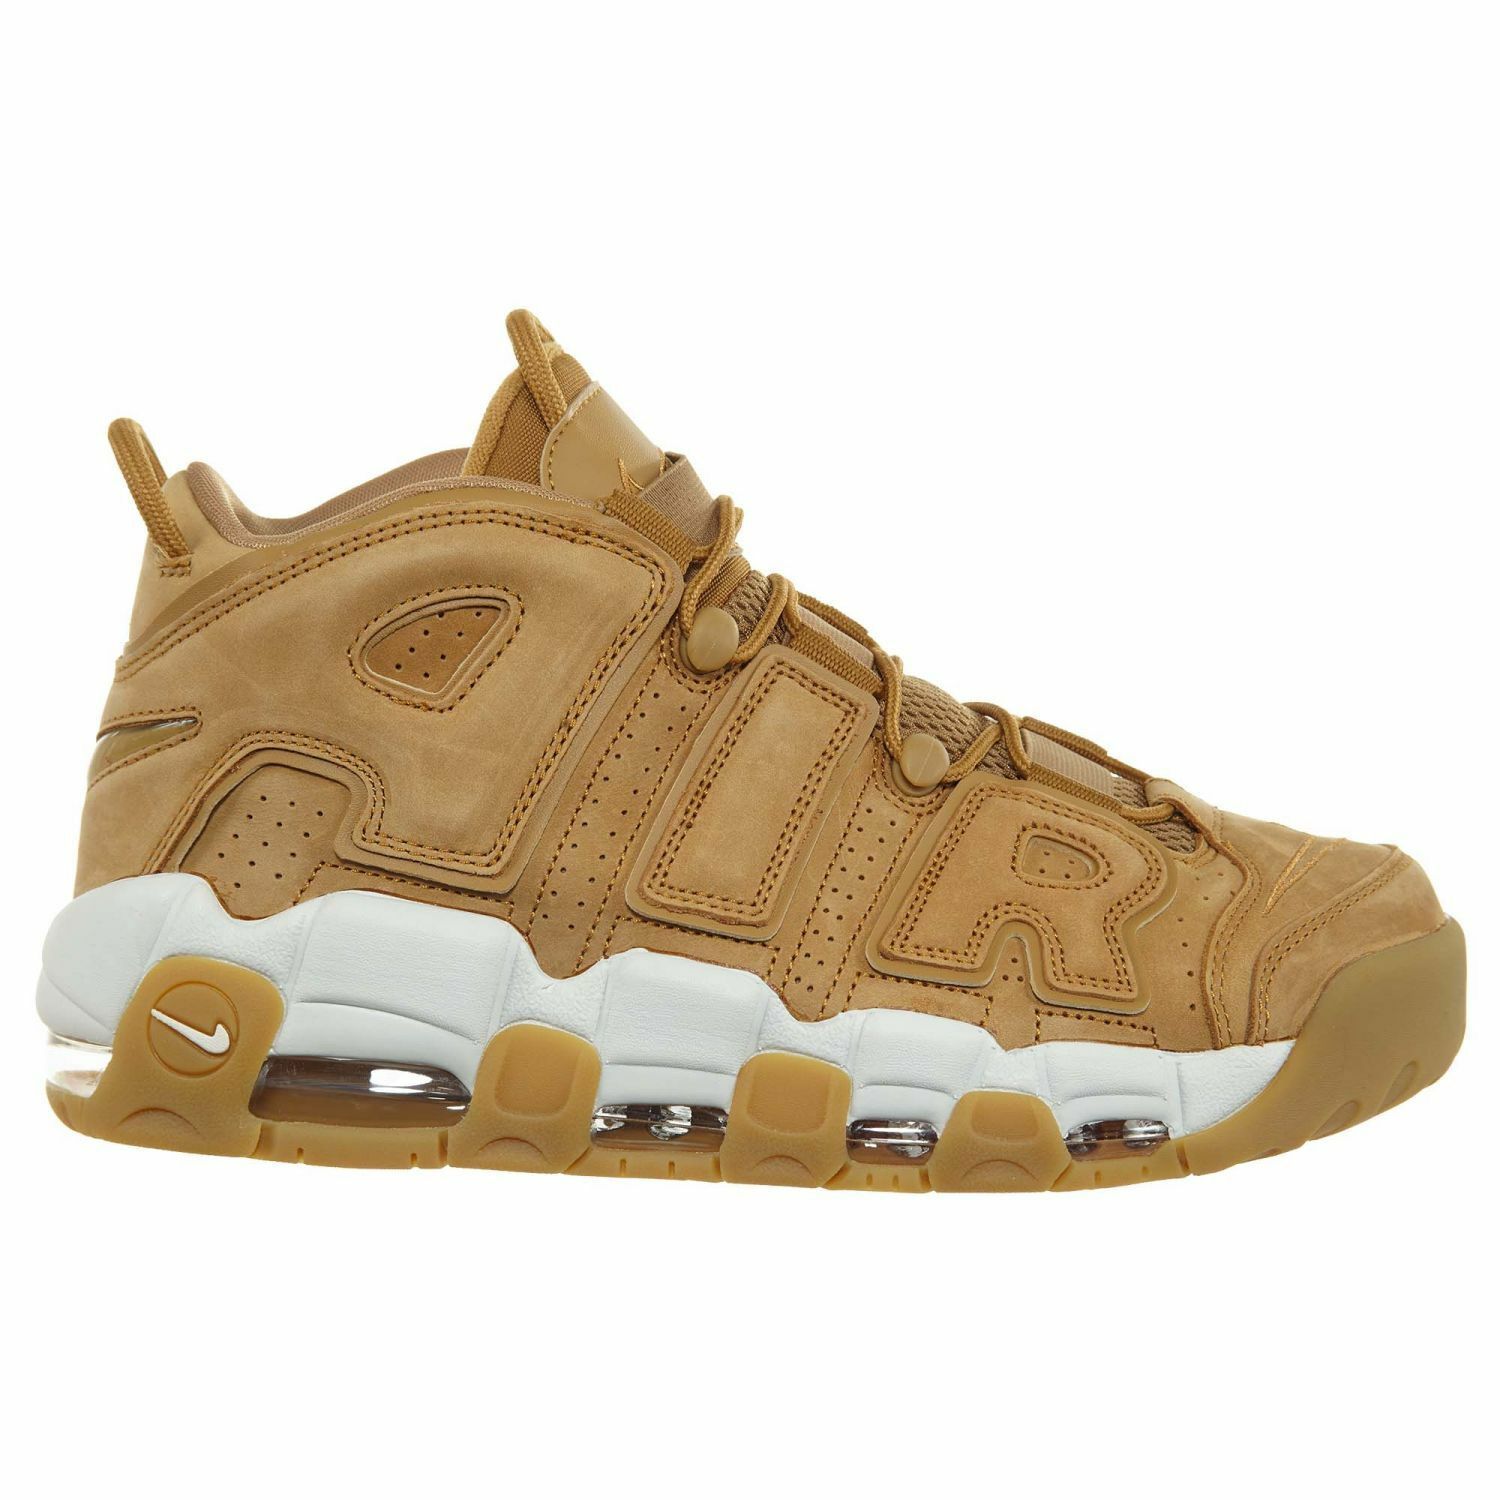 wholesale dealer bbf83 b3f87 Nike Air More Uptempo '96 Premium Mens AA4060-200 Flax Gum Suede shoes Size